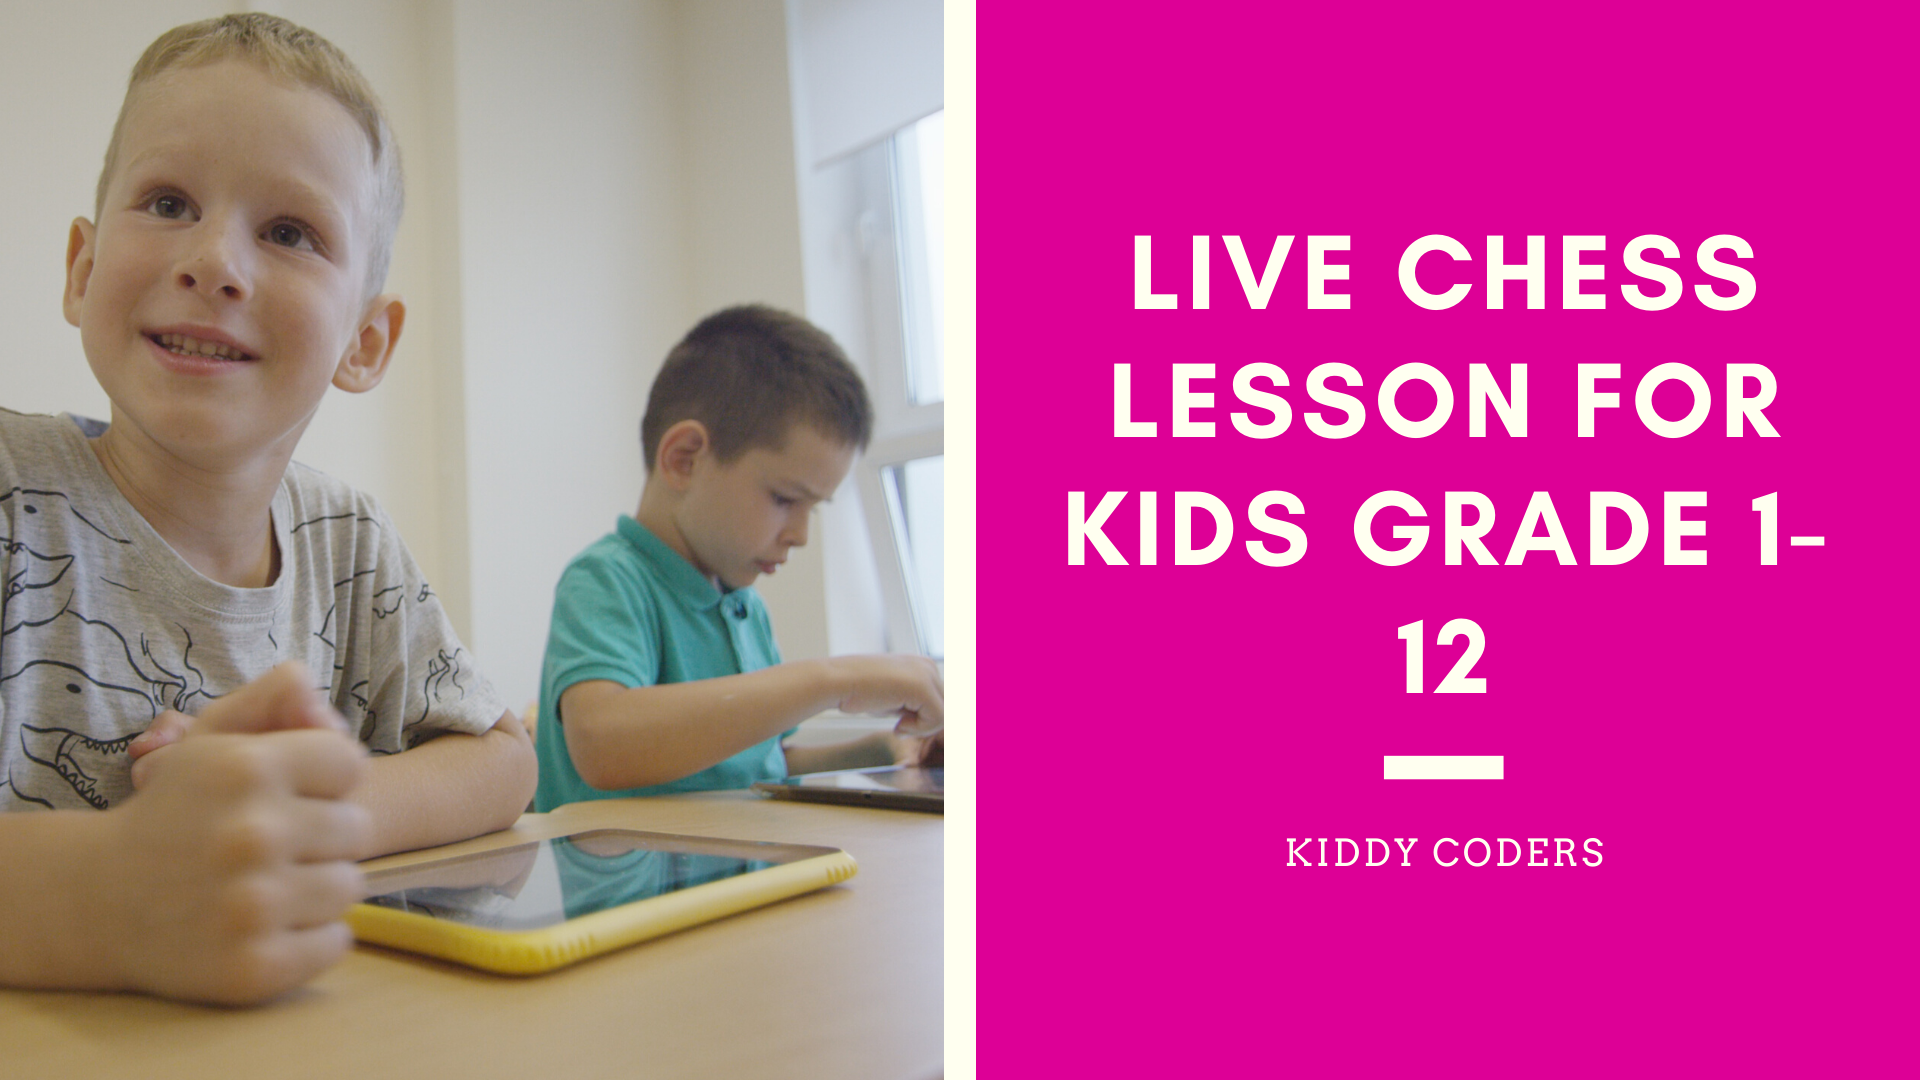 Live Chess Lesson for kids Grade 1-12